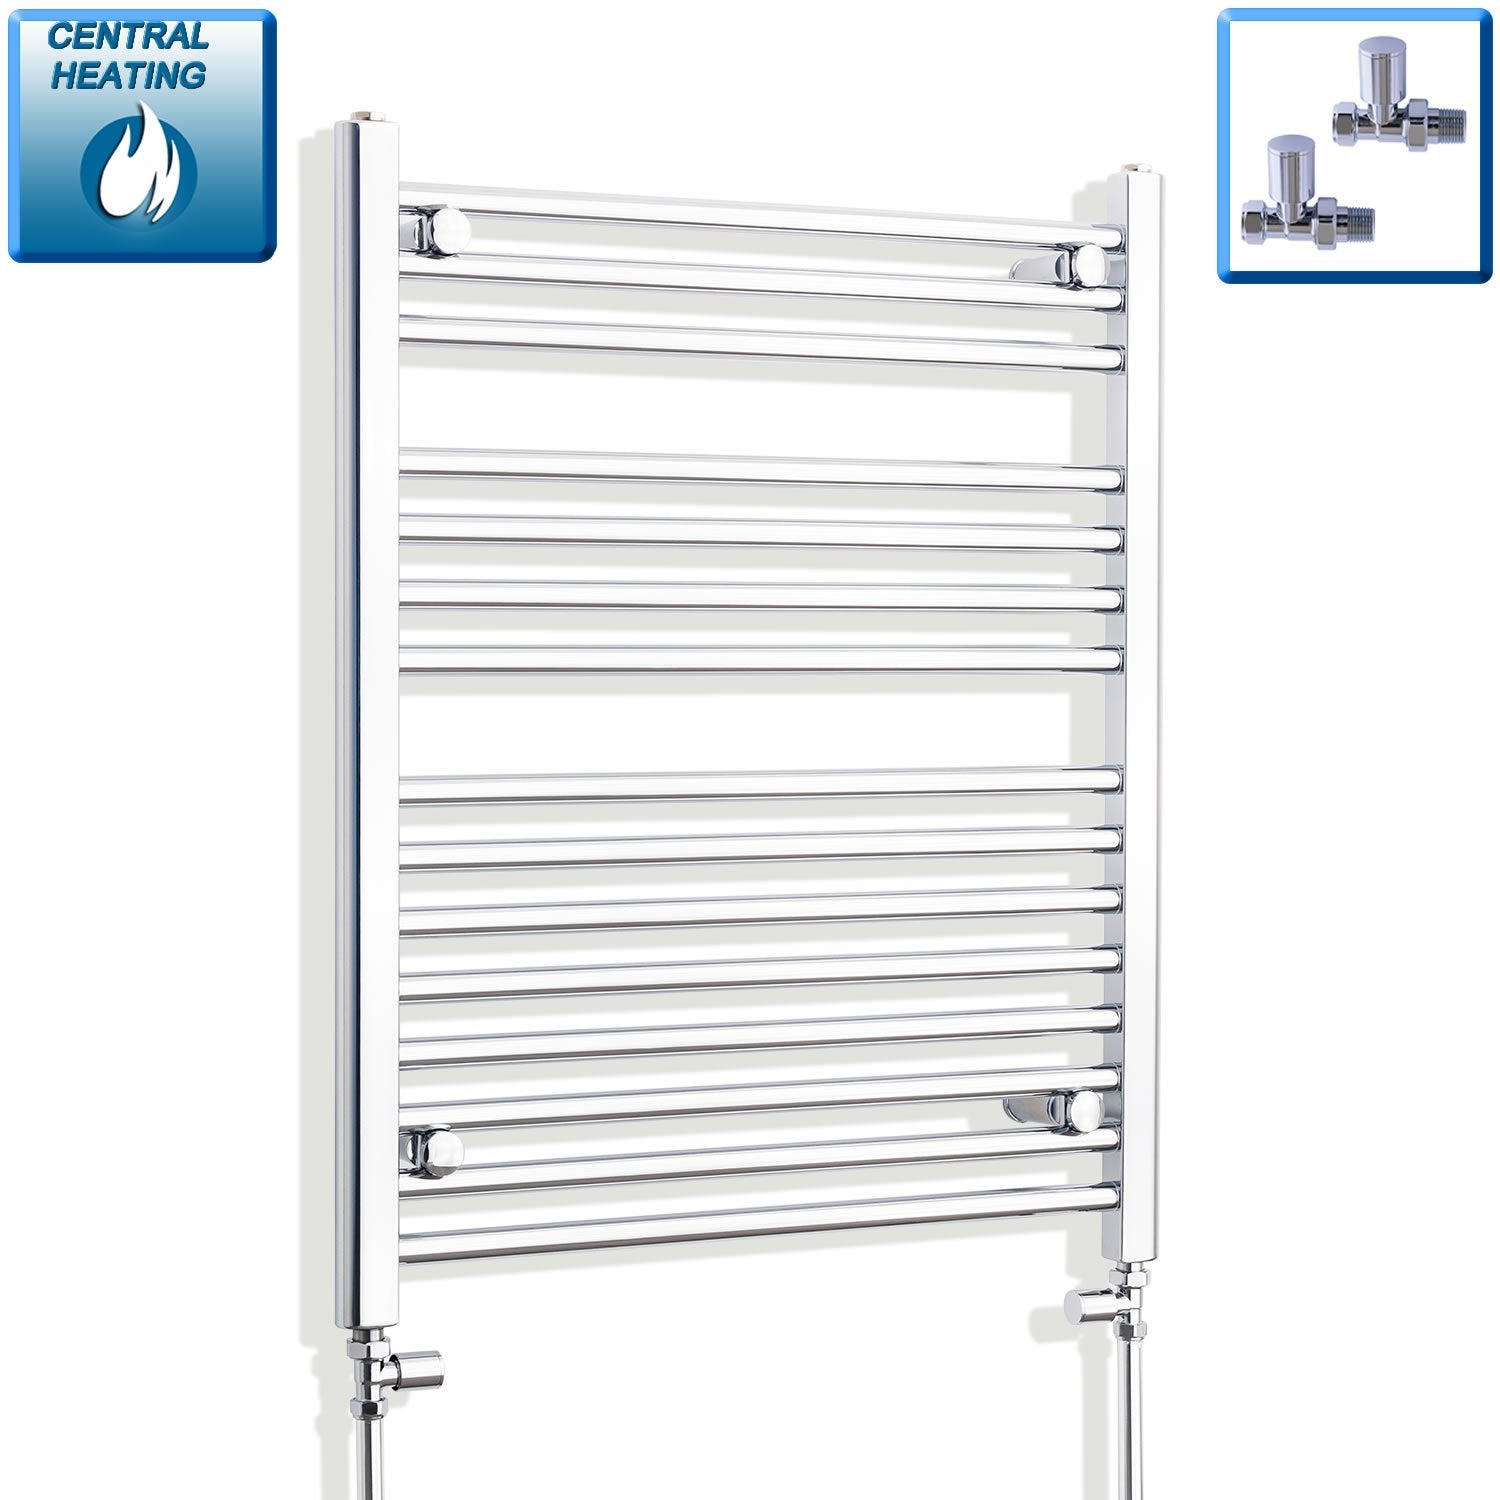 650mm Wide 800mm High Flat Chrome Heated Towel Rail Radiator HTR,With Straight Valve